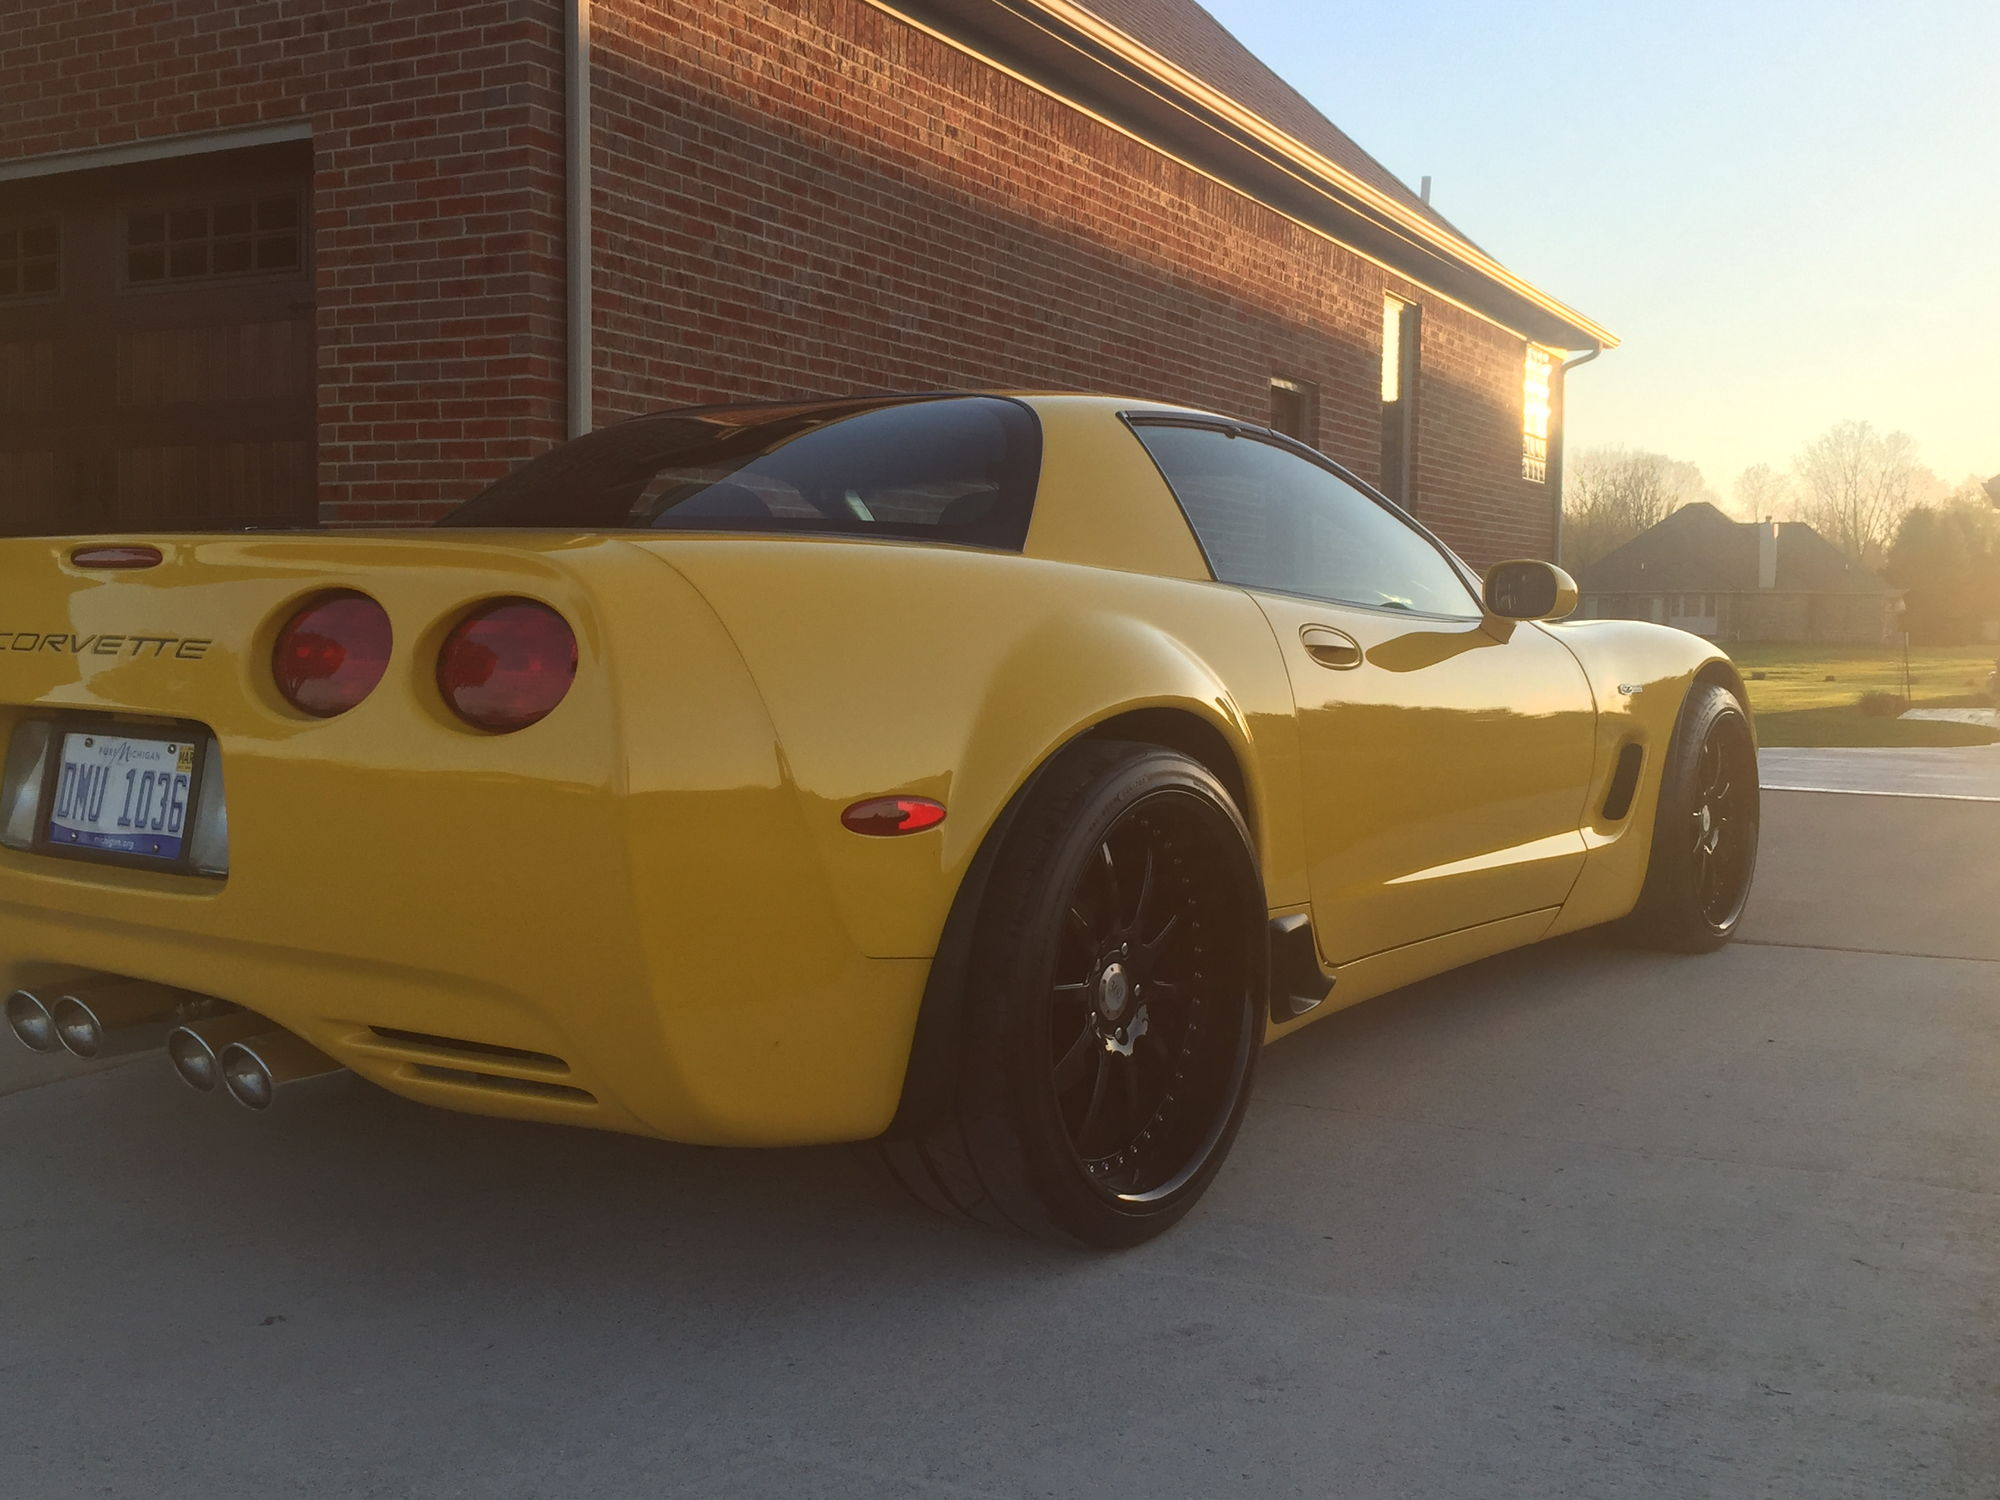 Used Corvettes For Sale In Michigan >> FS (For Sale) Z06 ligenfelter /wide body / 360 forged wheels - CorvetteForum - Chevrolet ...